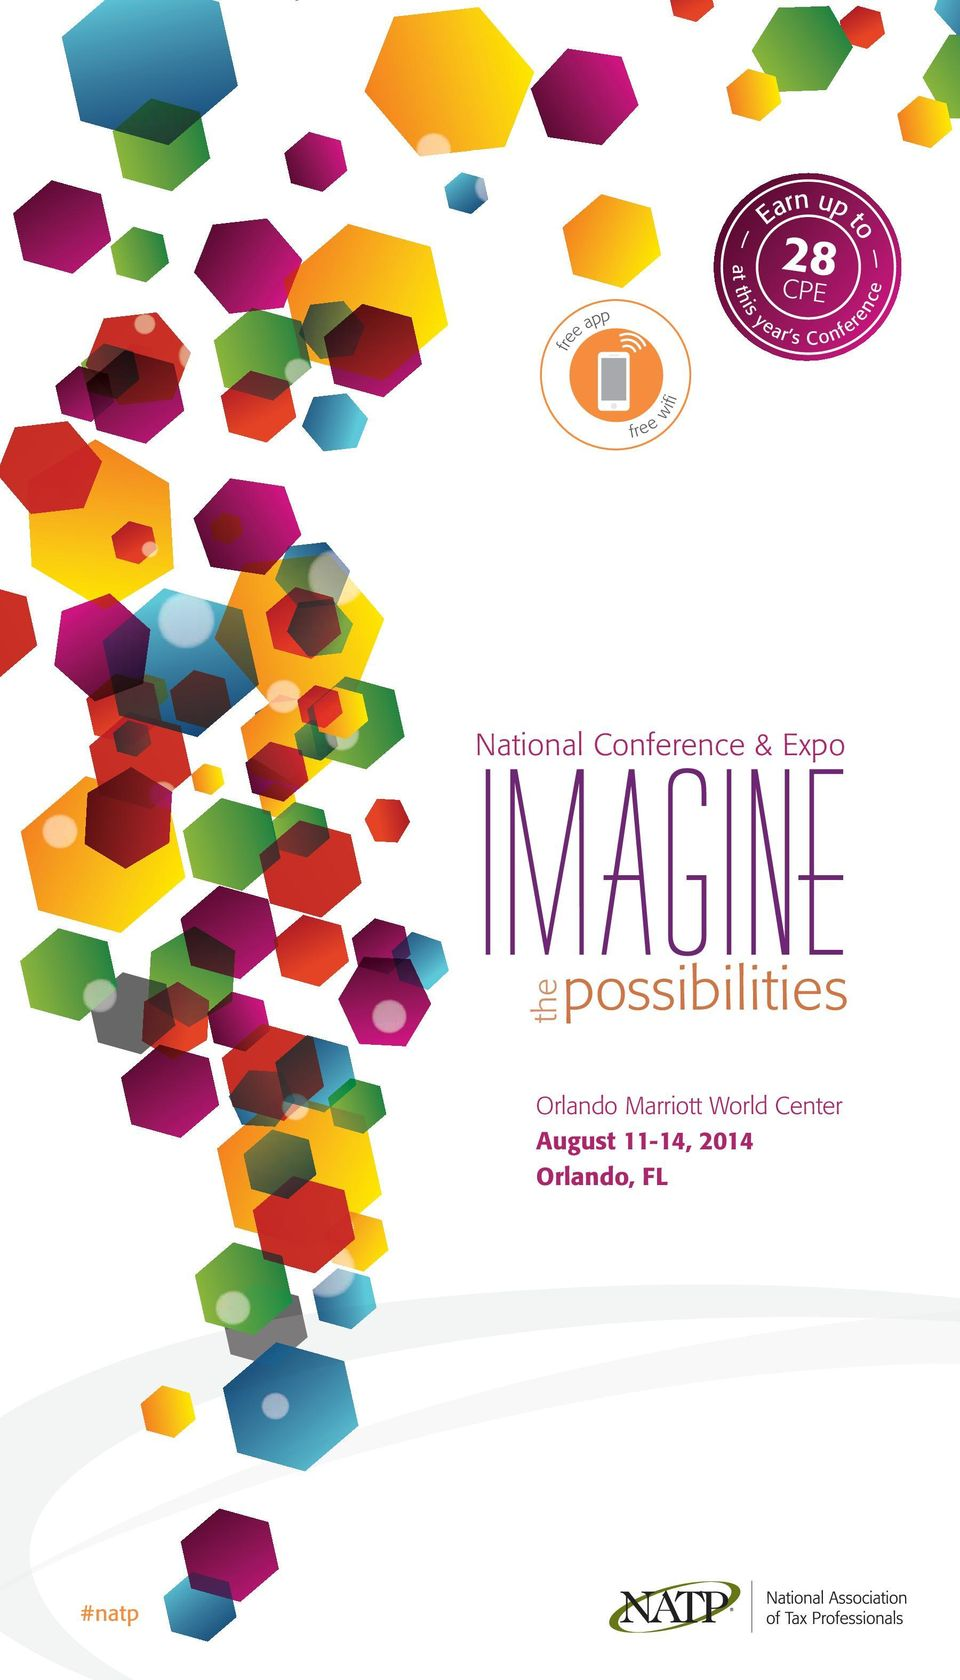 possibilities National Conference & Expo the